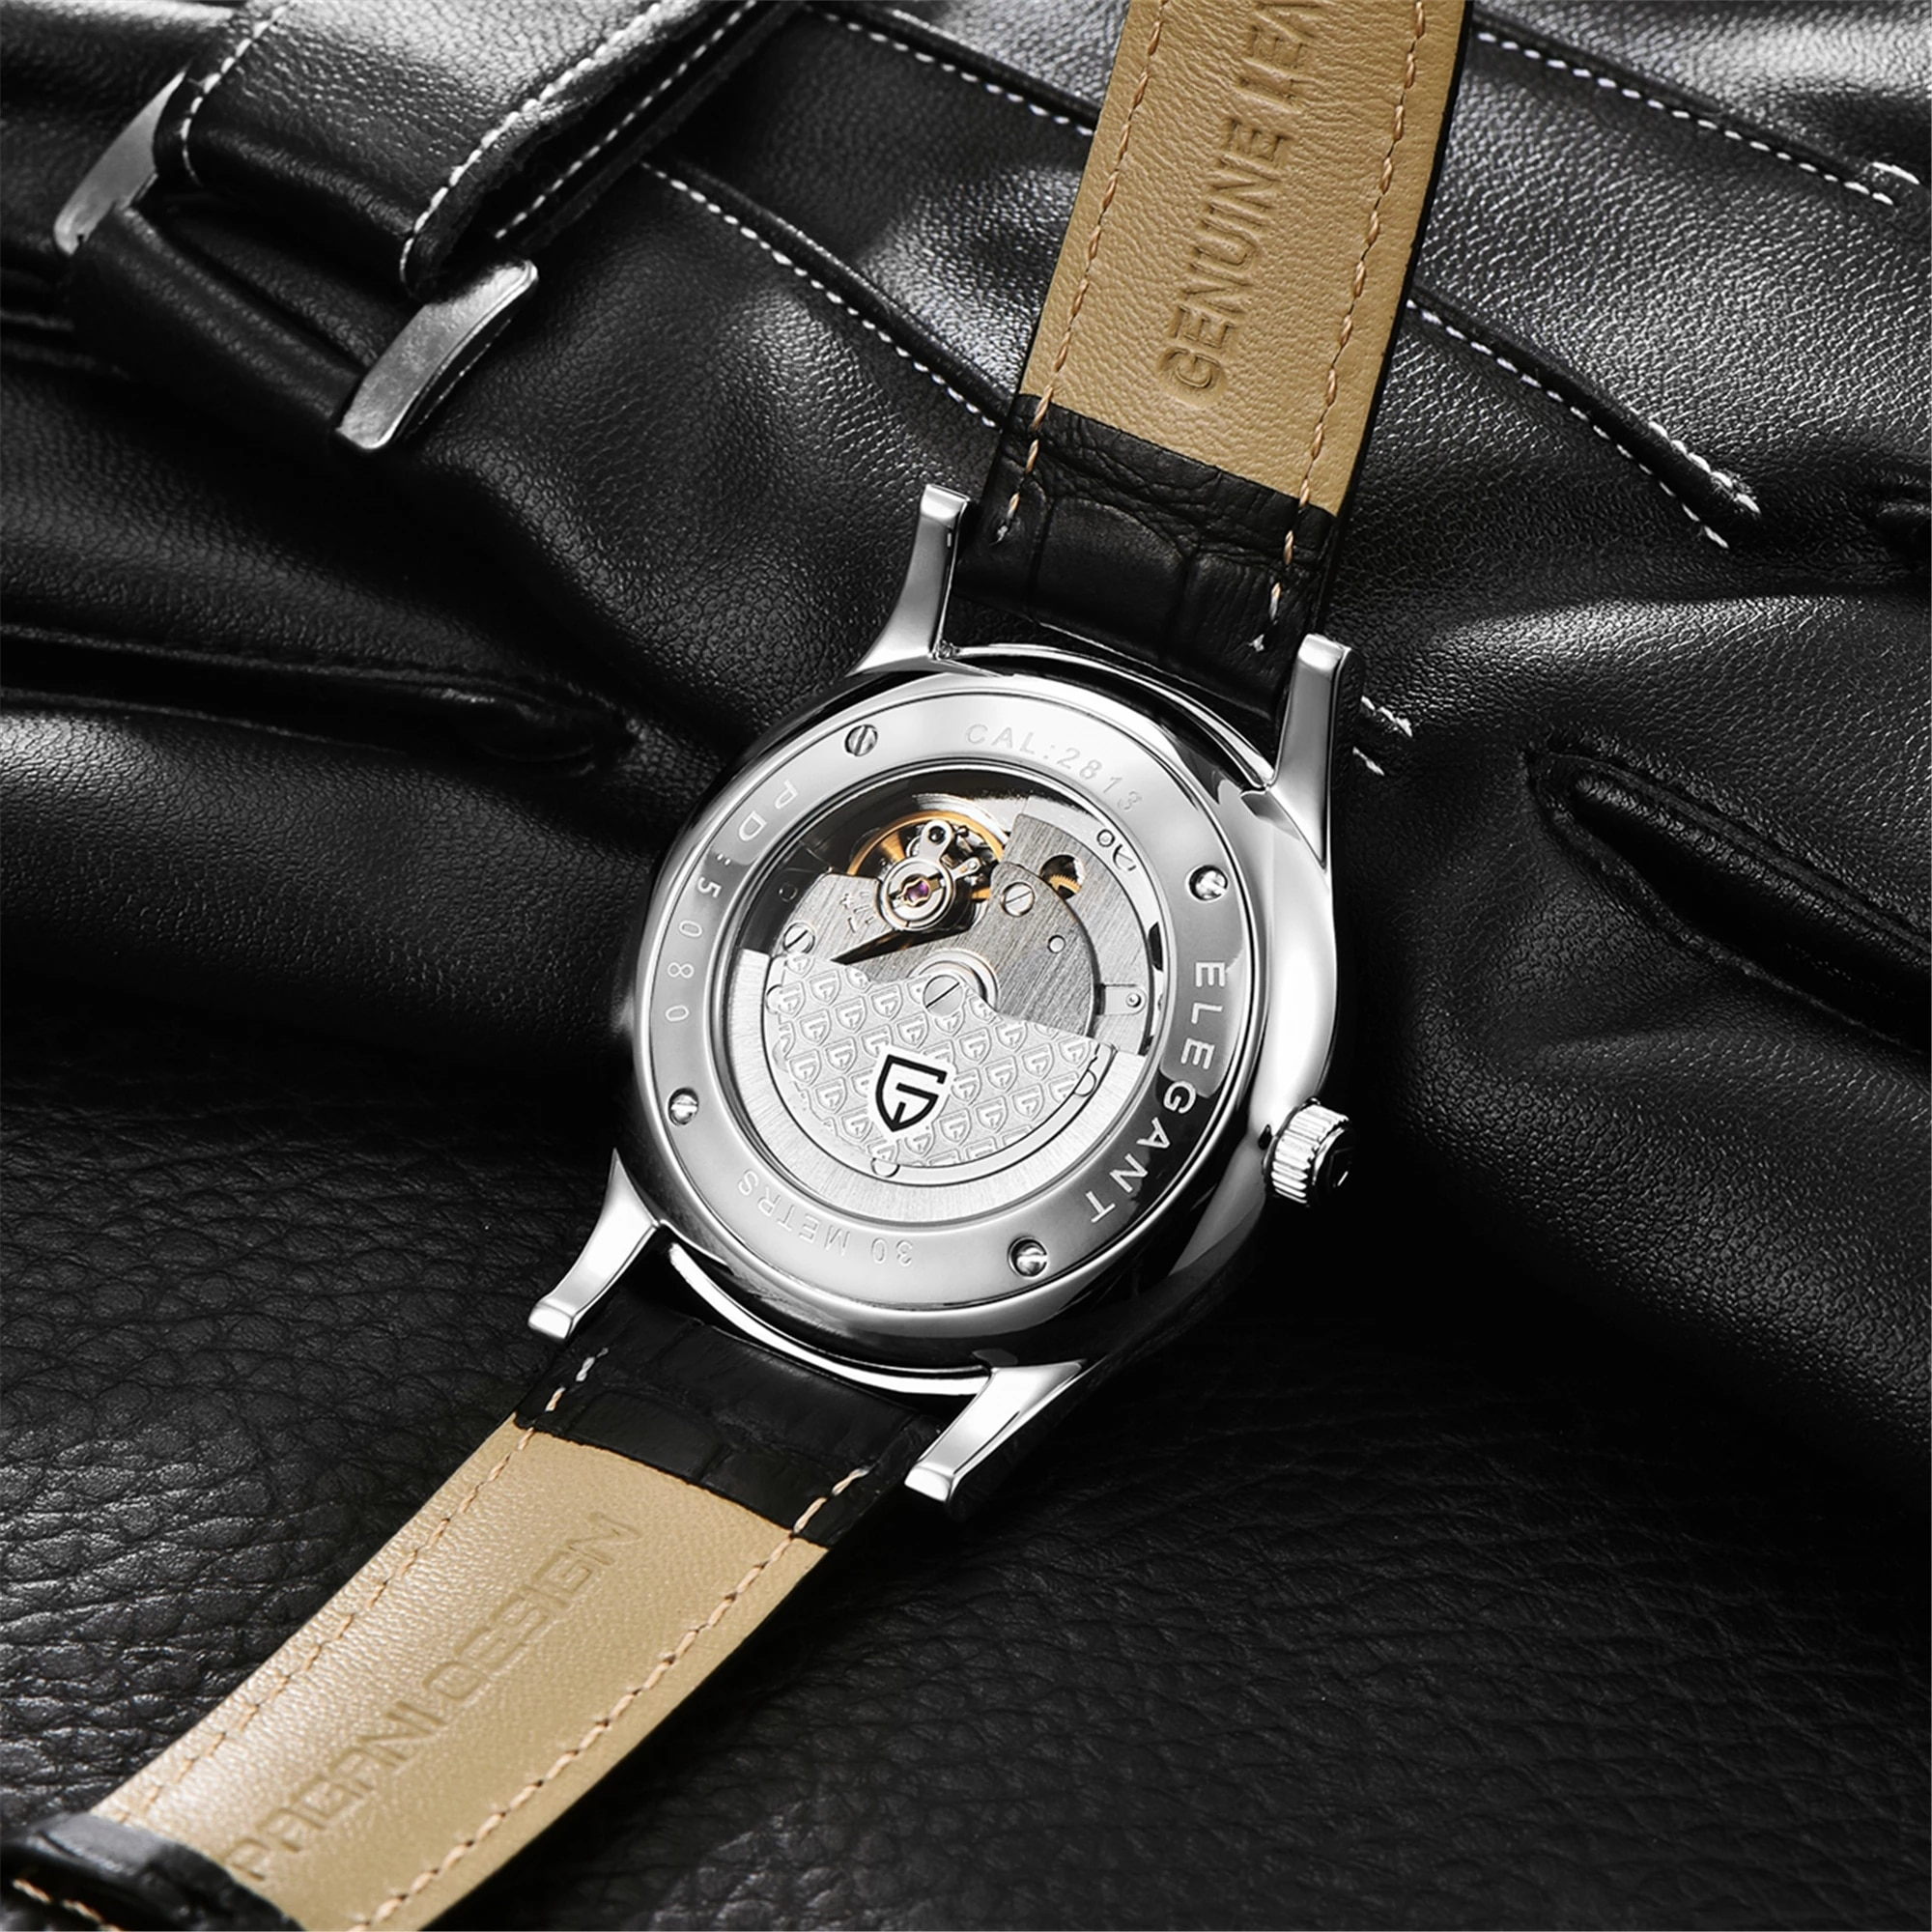 2021 New Pagani Design Top Brand Fashion Sports And Leisure Waterproof Sapphire Stainless Steel Glass Watch Mechanical Watch enlarge